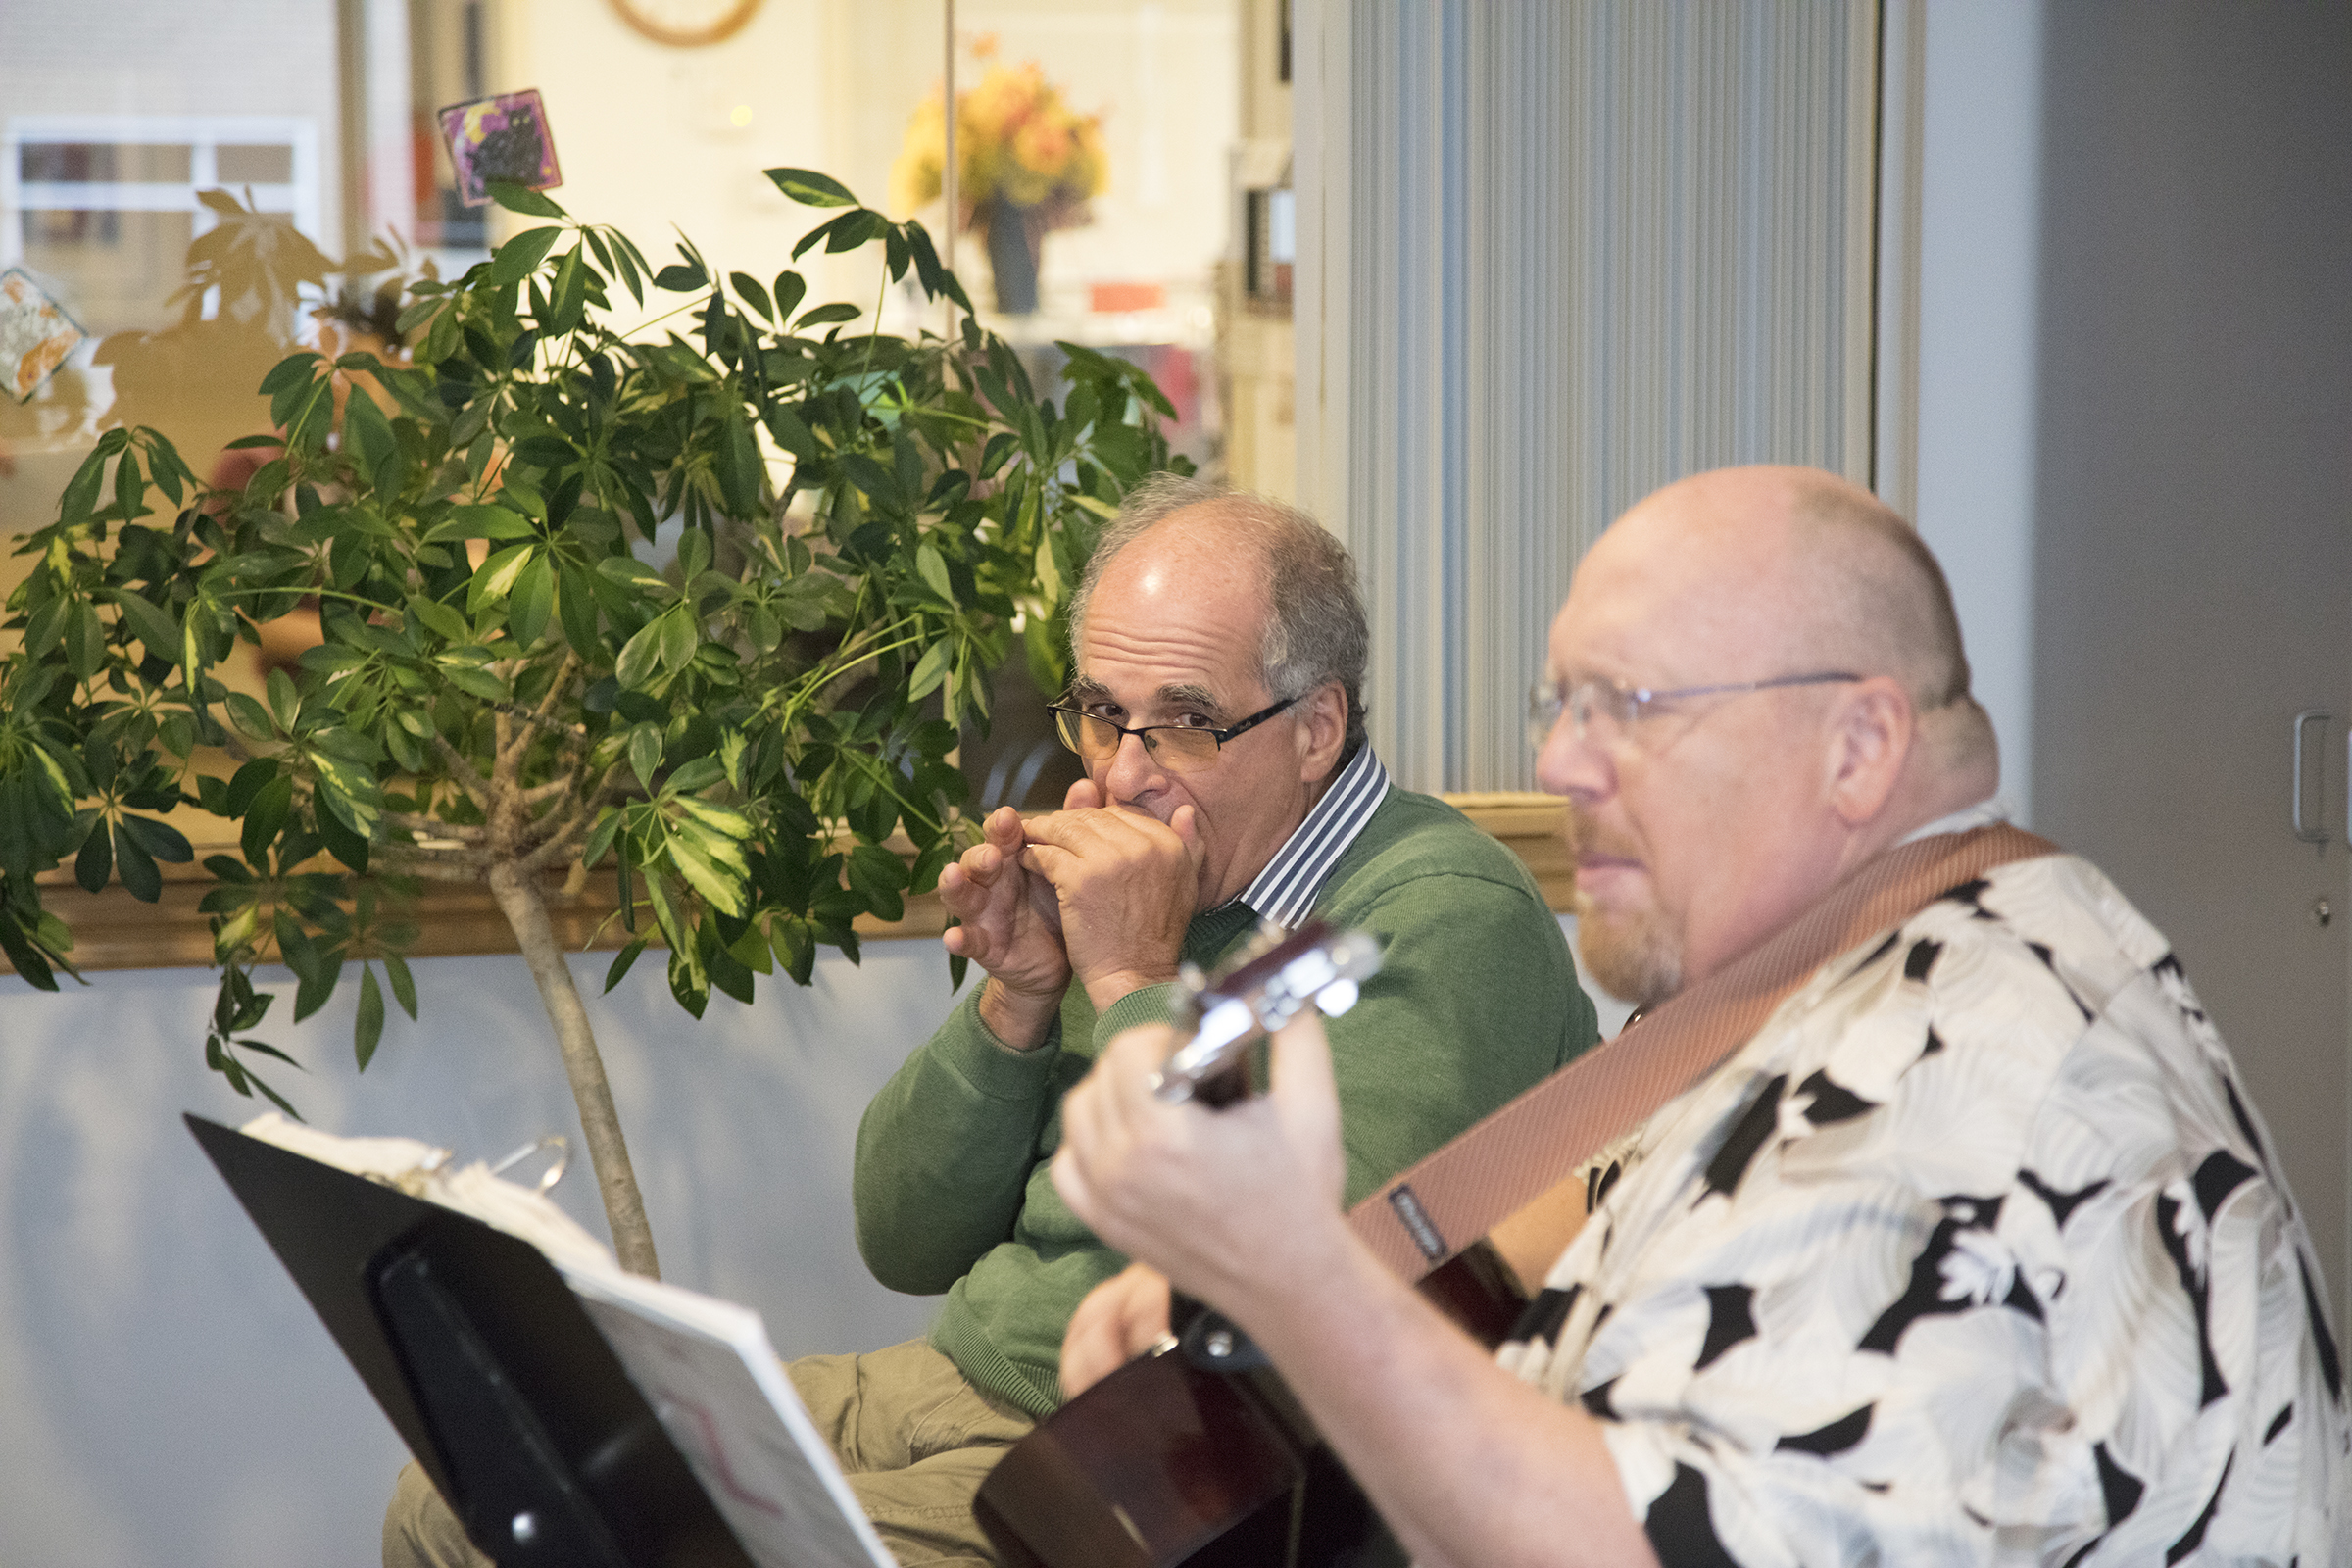 Jim Penta playing the harmonica while visiting Craig Hospital on Wish of a Lifetime trip years after spinal cord injury and traumatic brain injury rehabilitation